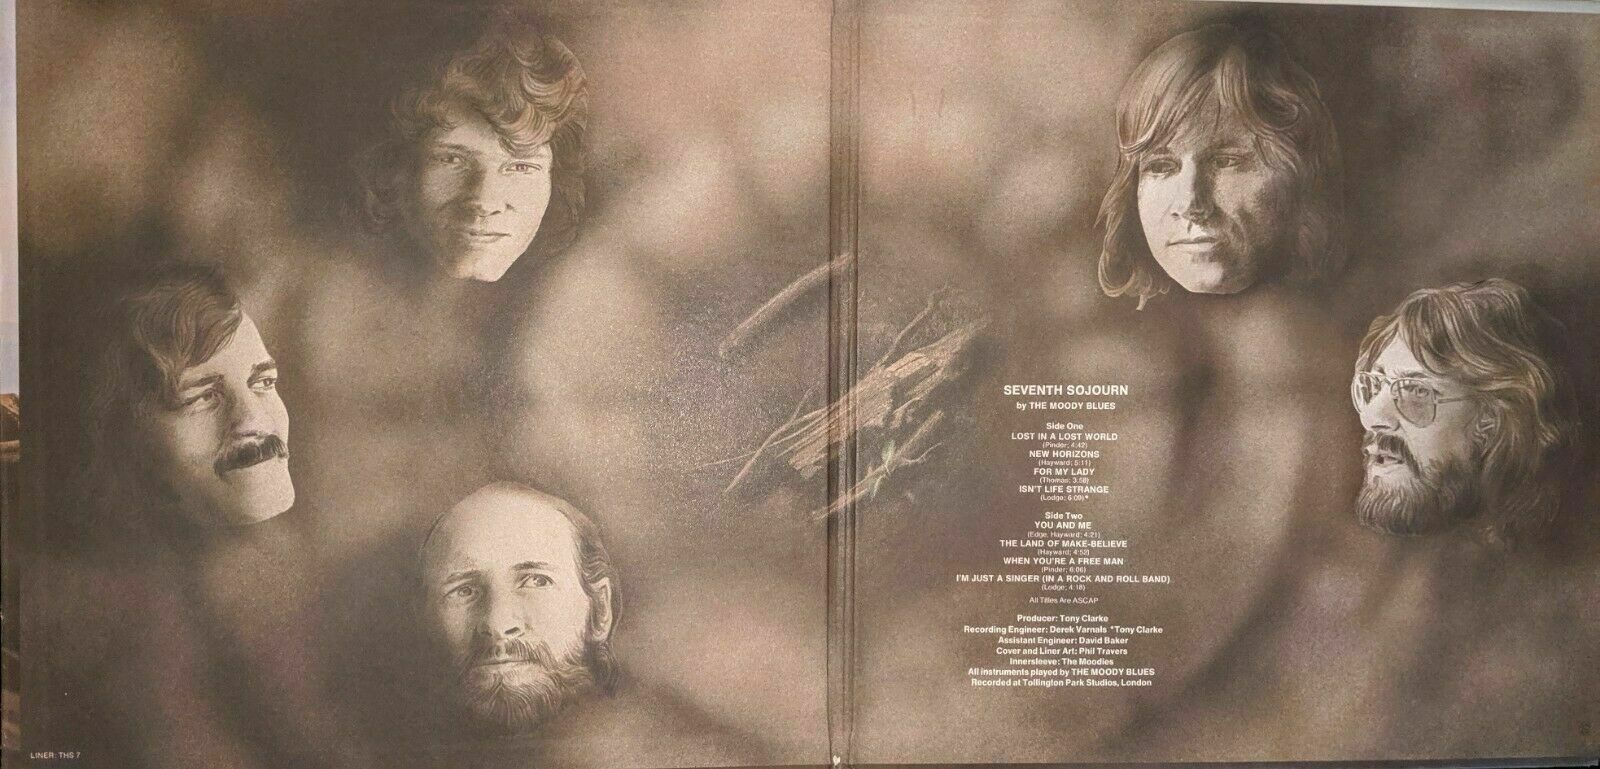 Moody Blues, Seventh Sojourn Vinyl LP, released 1972, London Records